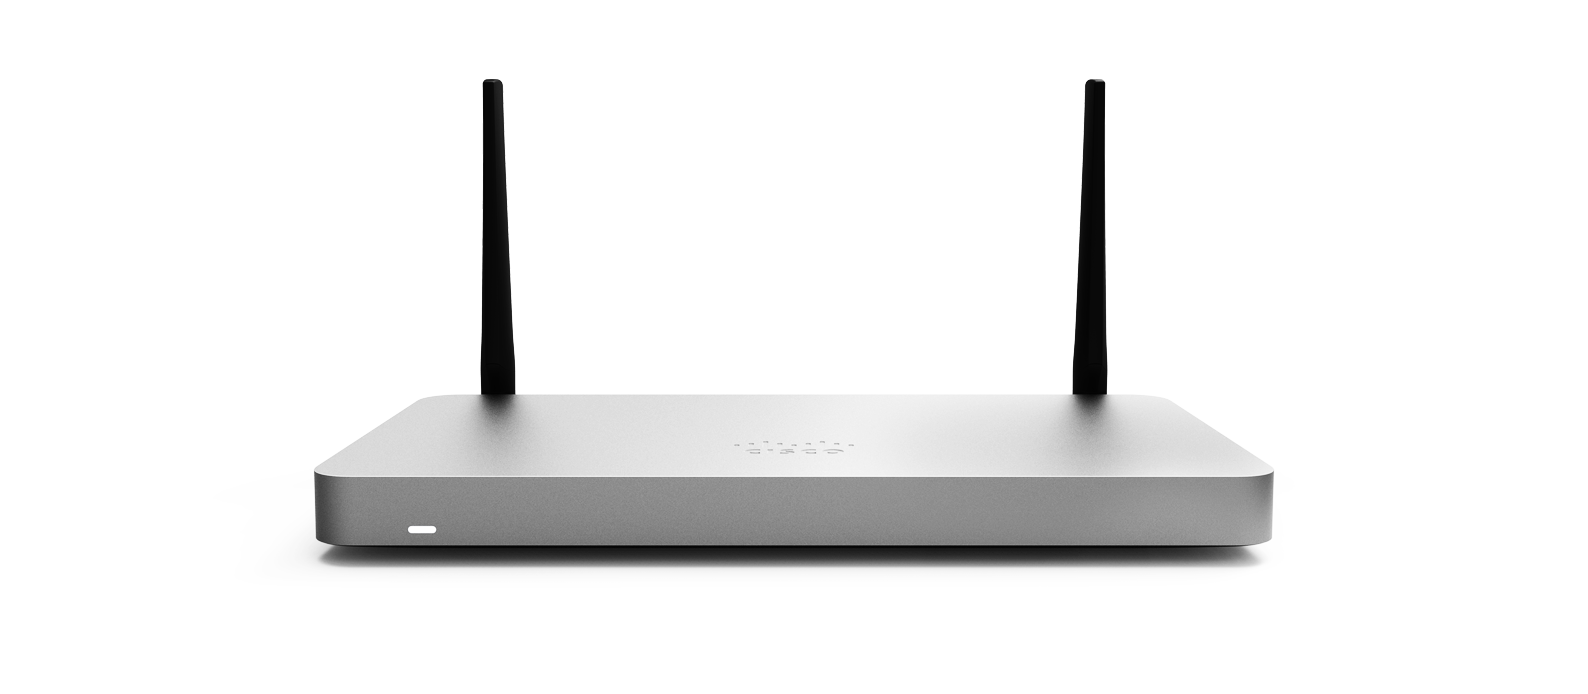 Cisco Meraki XM68CW Firewall device